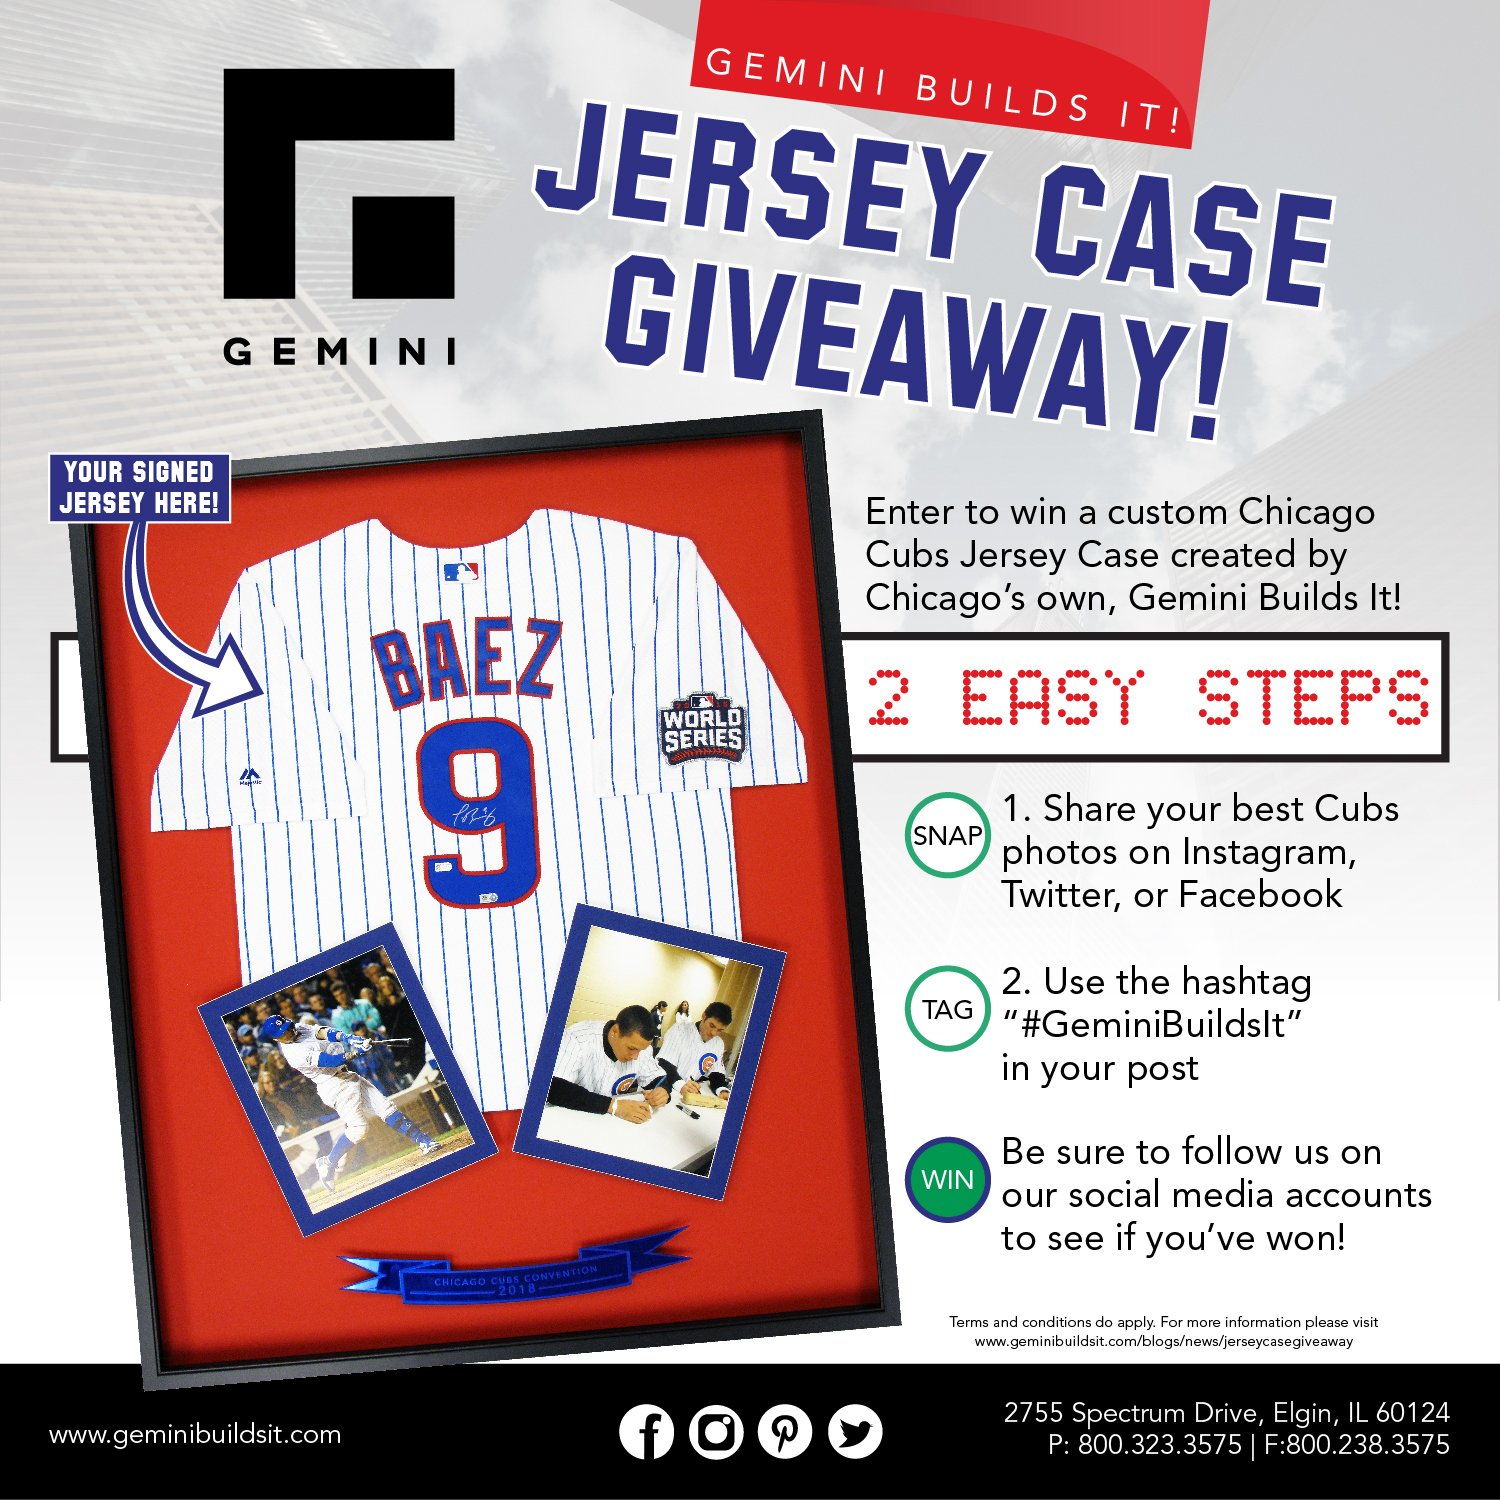 Cubs_Convention_2018_Jersey_Case_Giveaway-02_81efb8d4-25cb-476a-ace6-3b14d00ad6a6